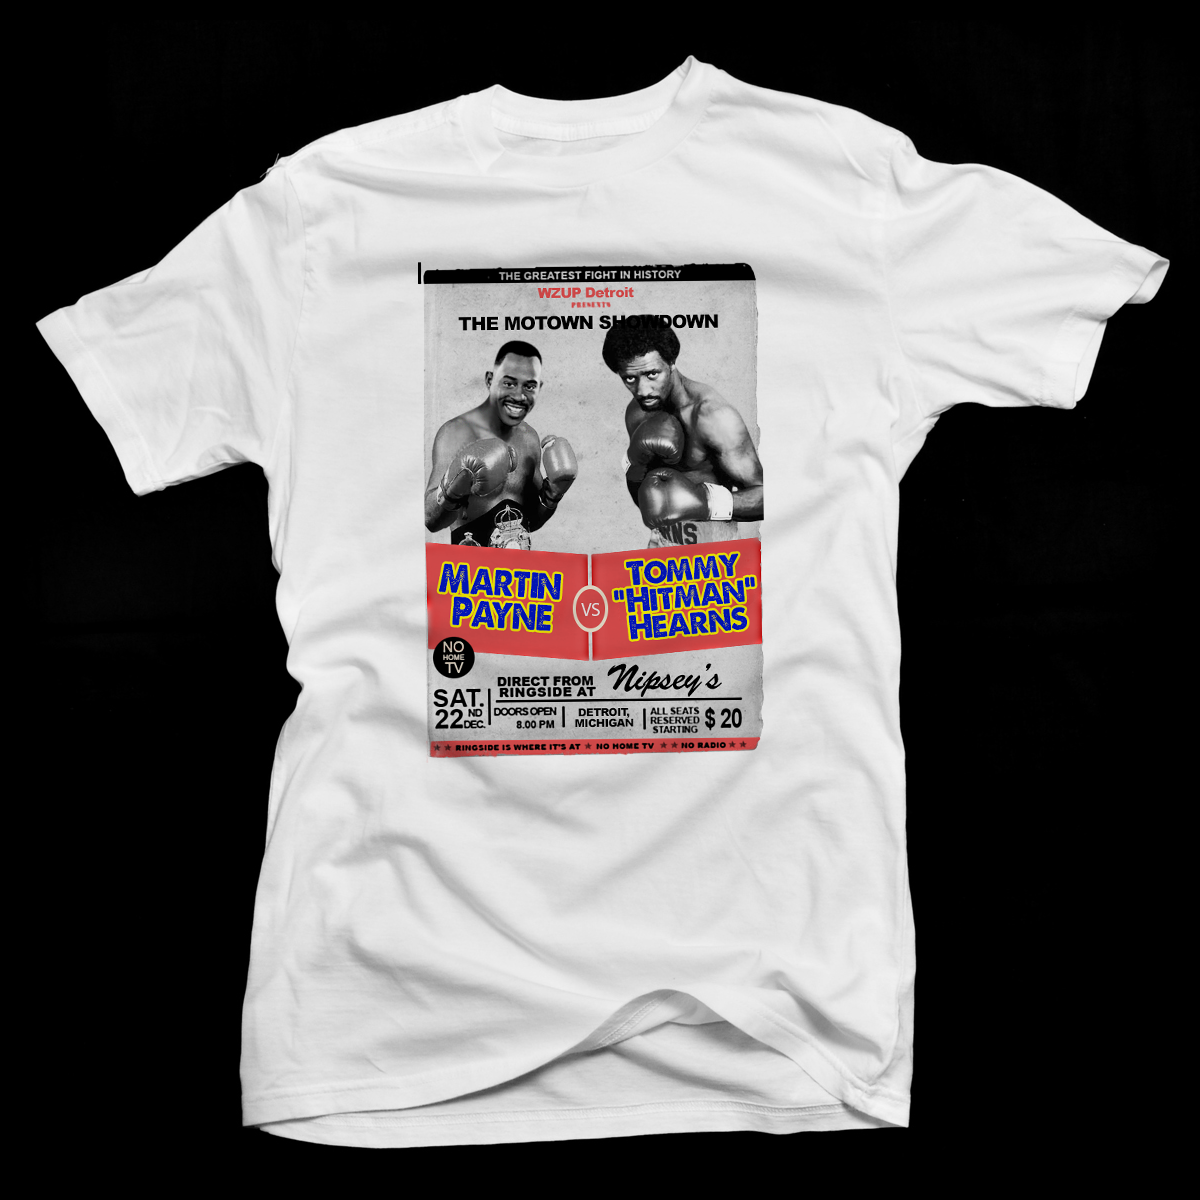 Motown Showdown T Shirt By Freshtil Detroit Martin Martinpayne Martinlawrence 90stees Tommyhearns Hitman 90s Love Mens Tops Shirts T Shirt